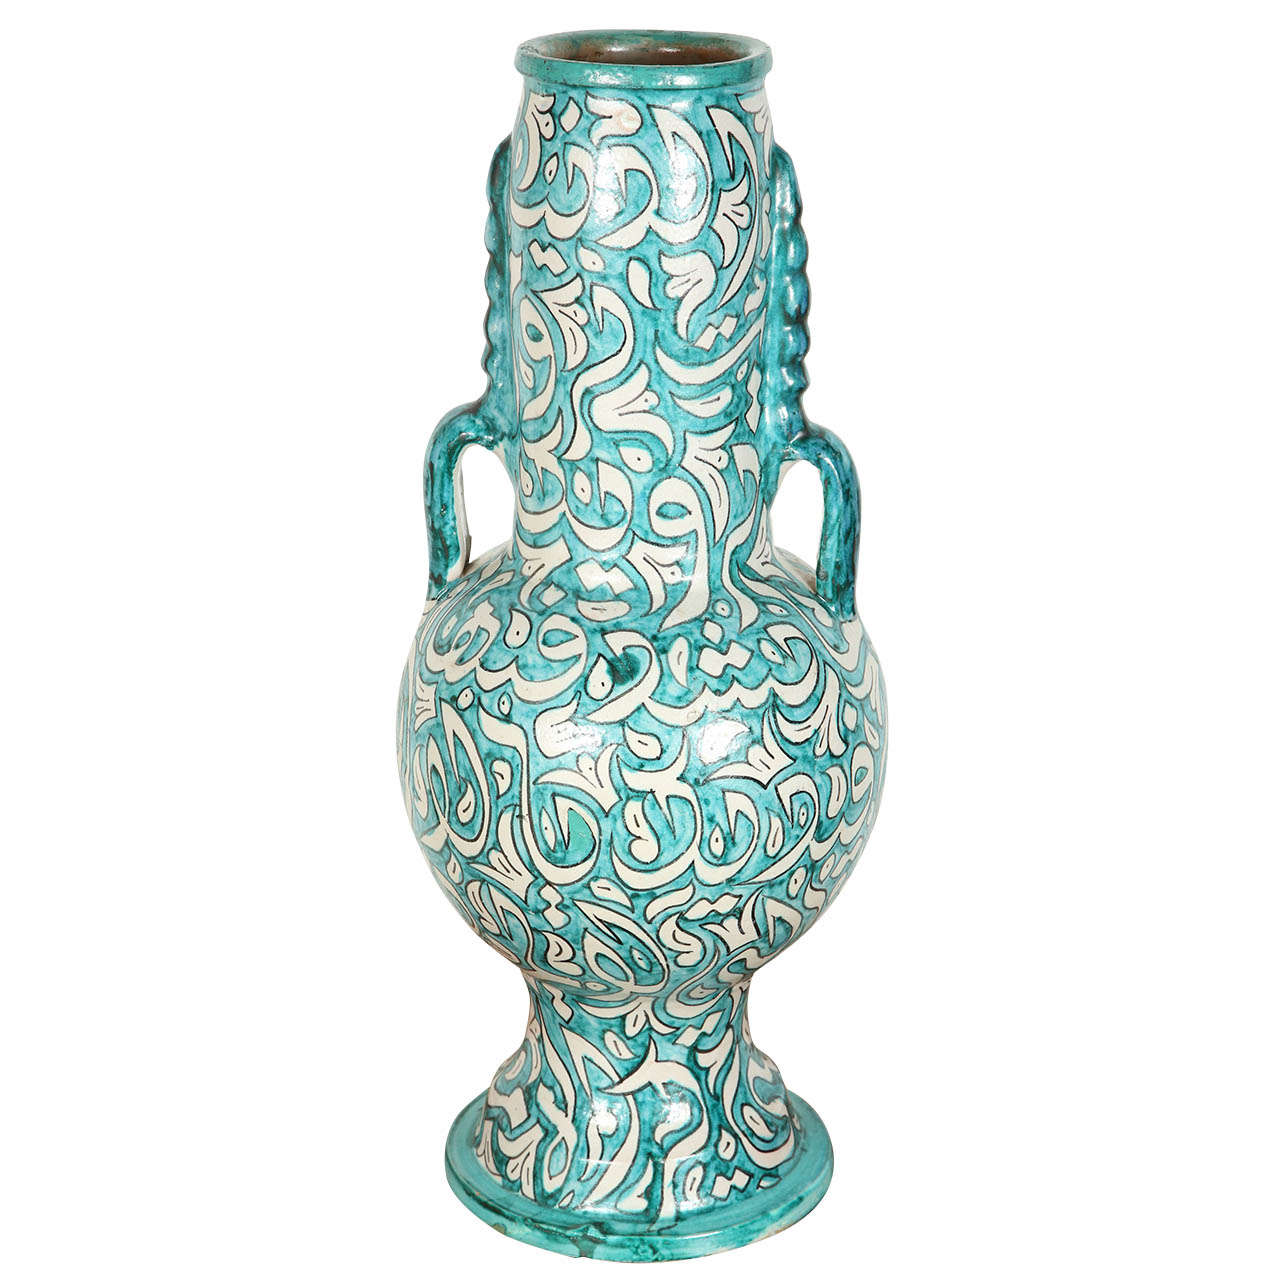 Large Handcrafted Moroccan Ceramic Vase From Fez at 1stdibs